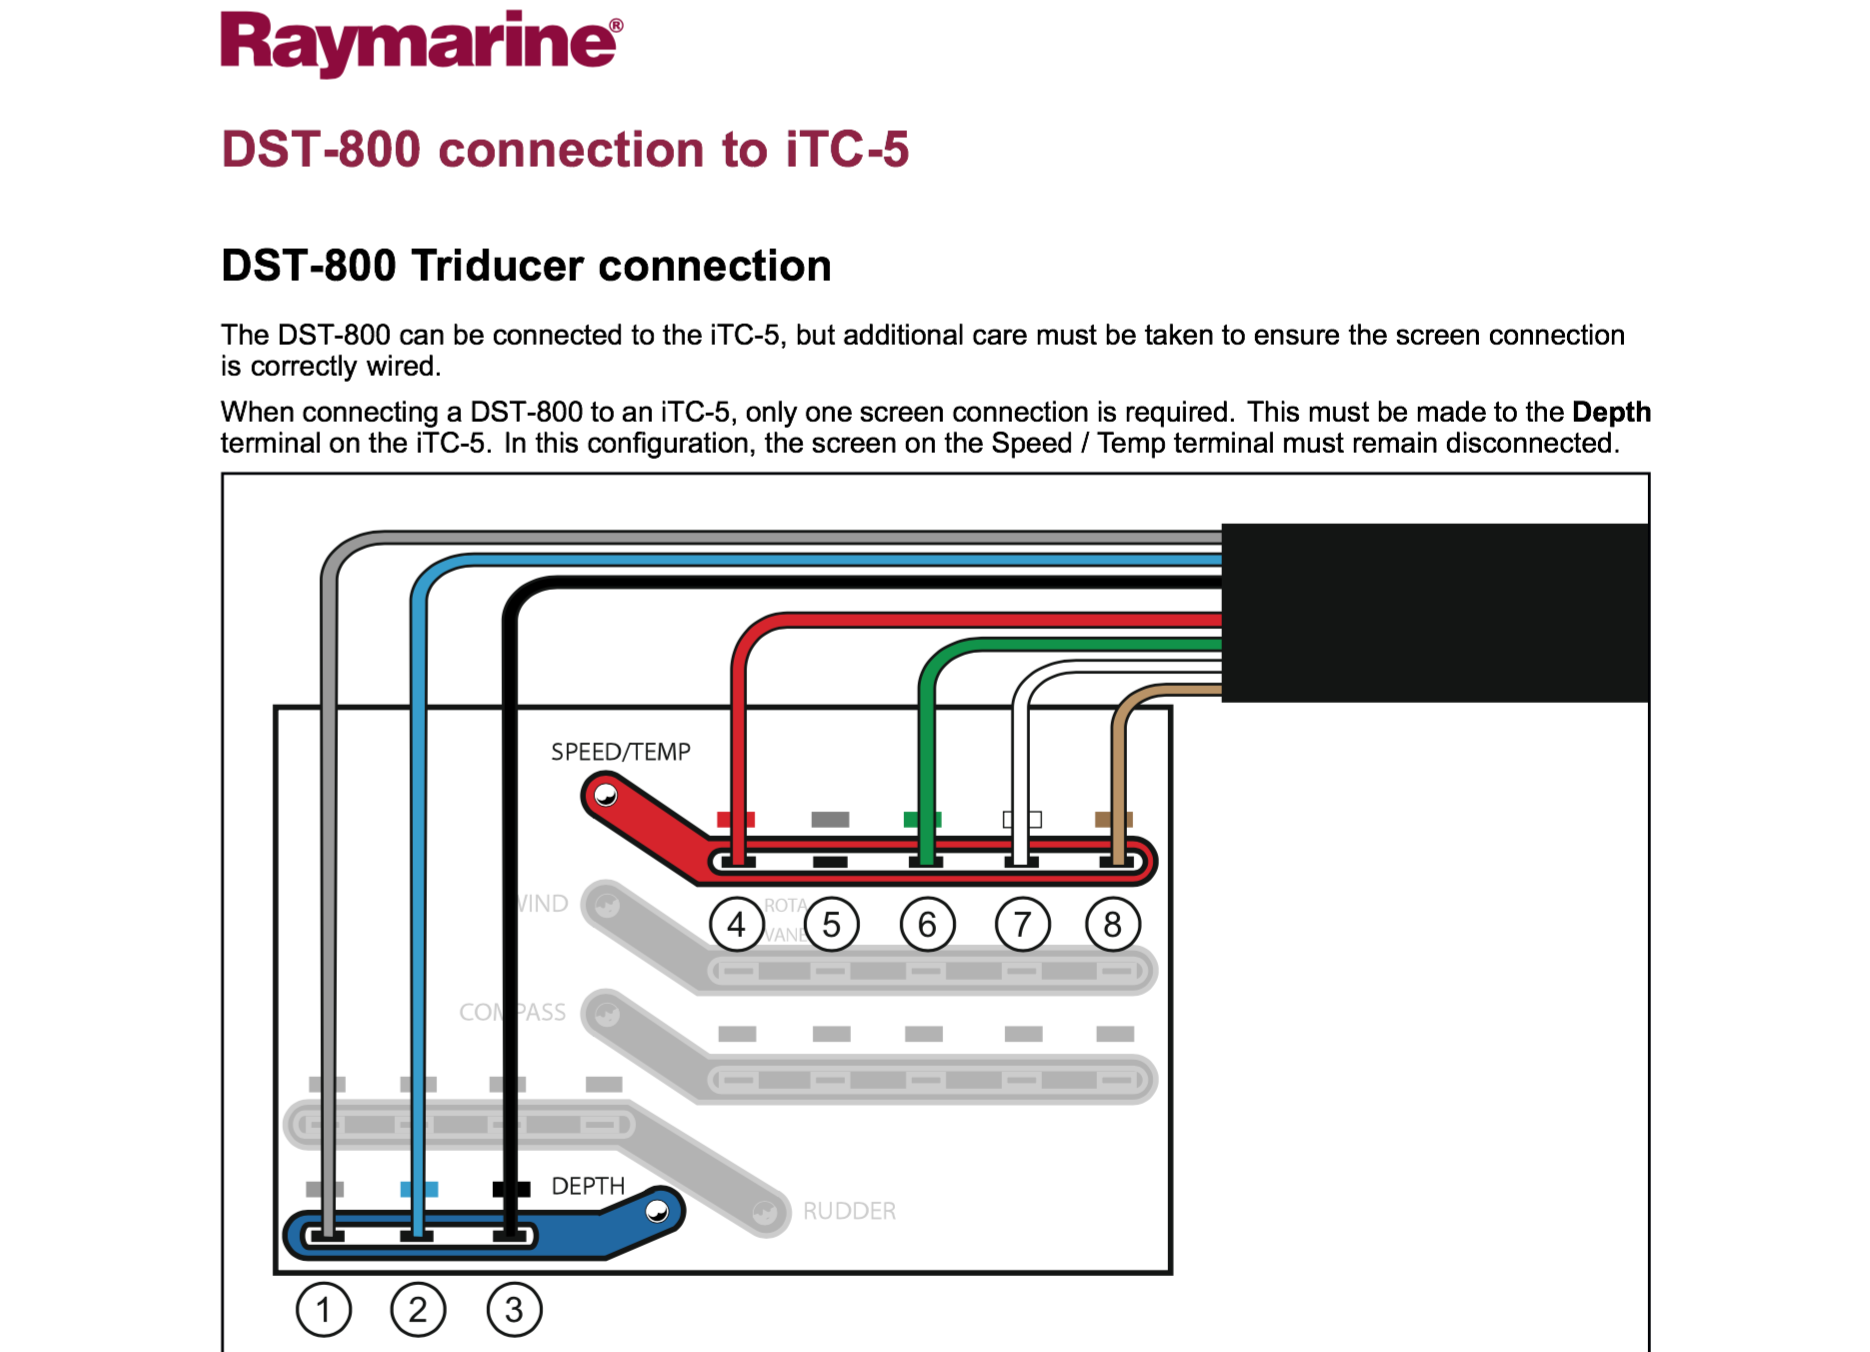 dst800 connection to itc 5 instructions.png